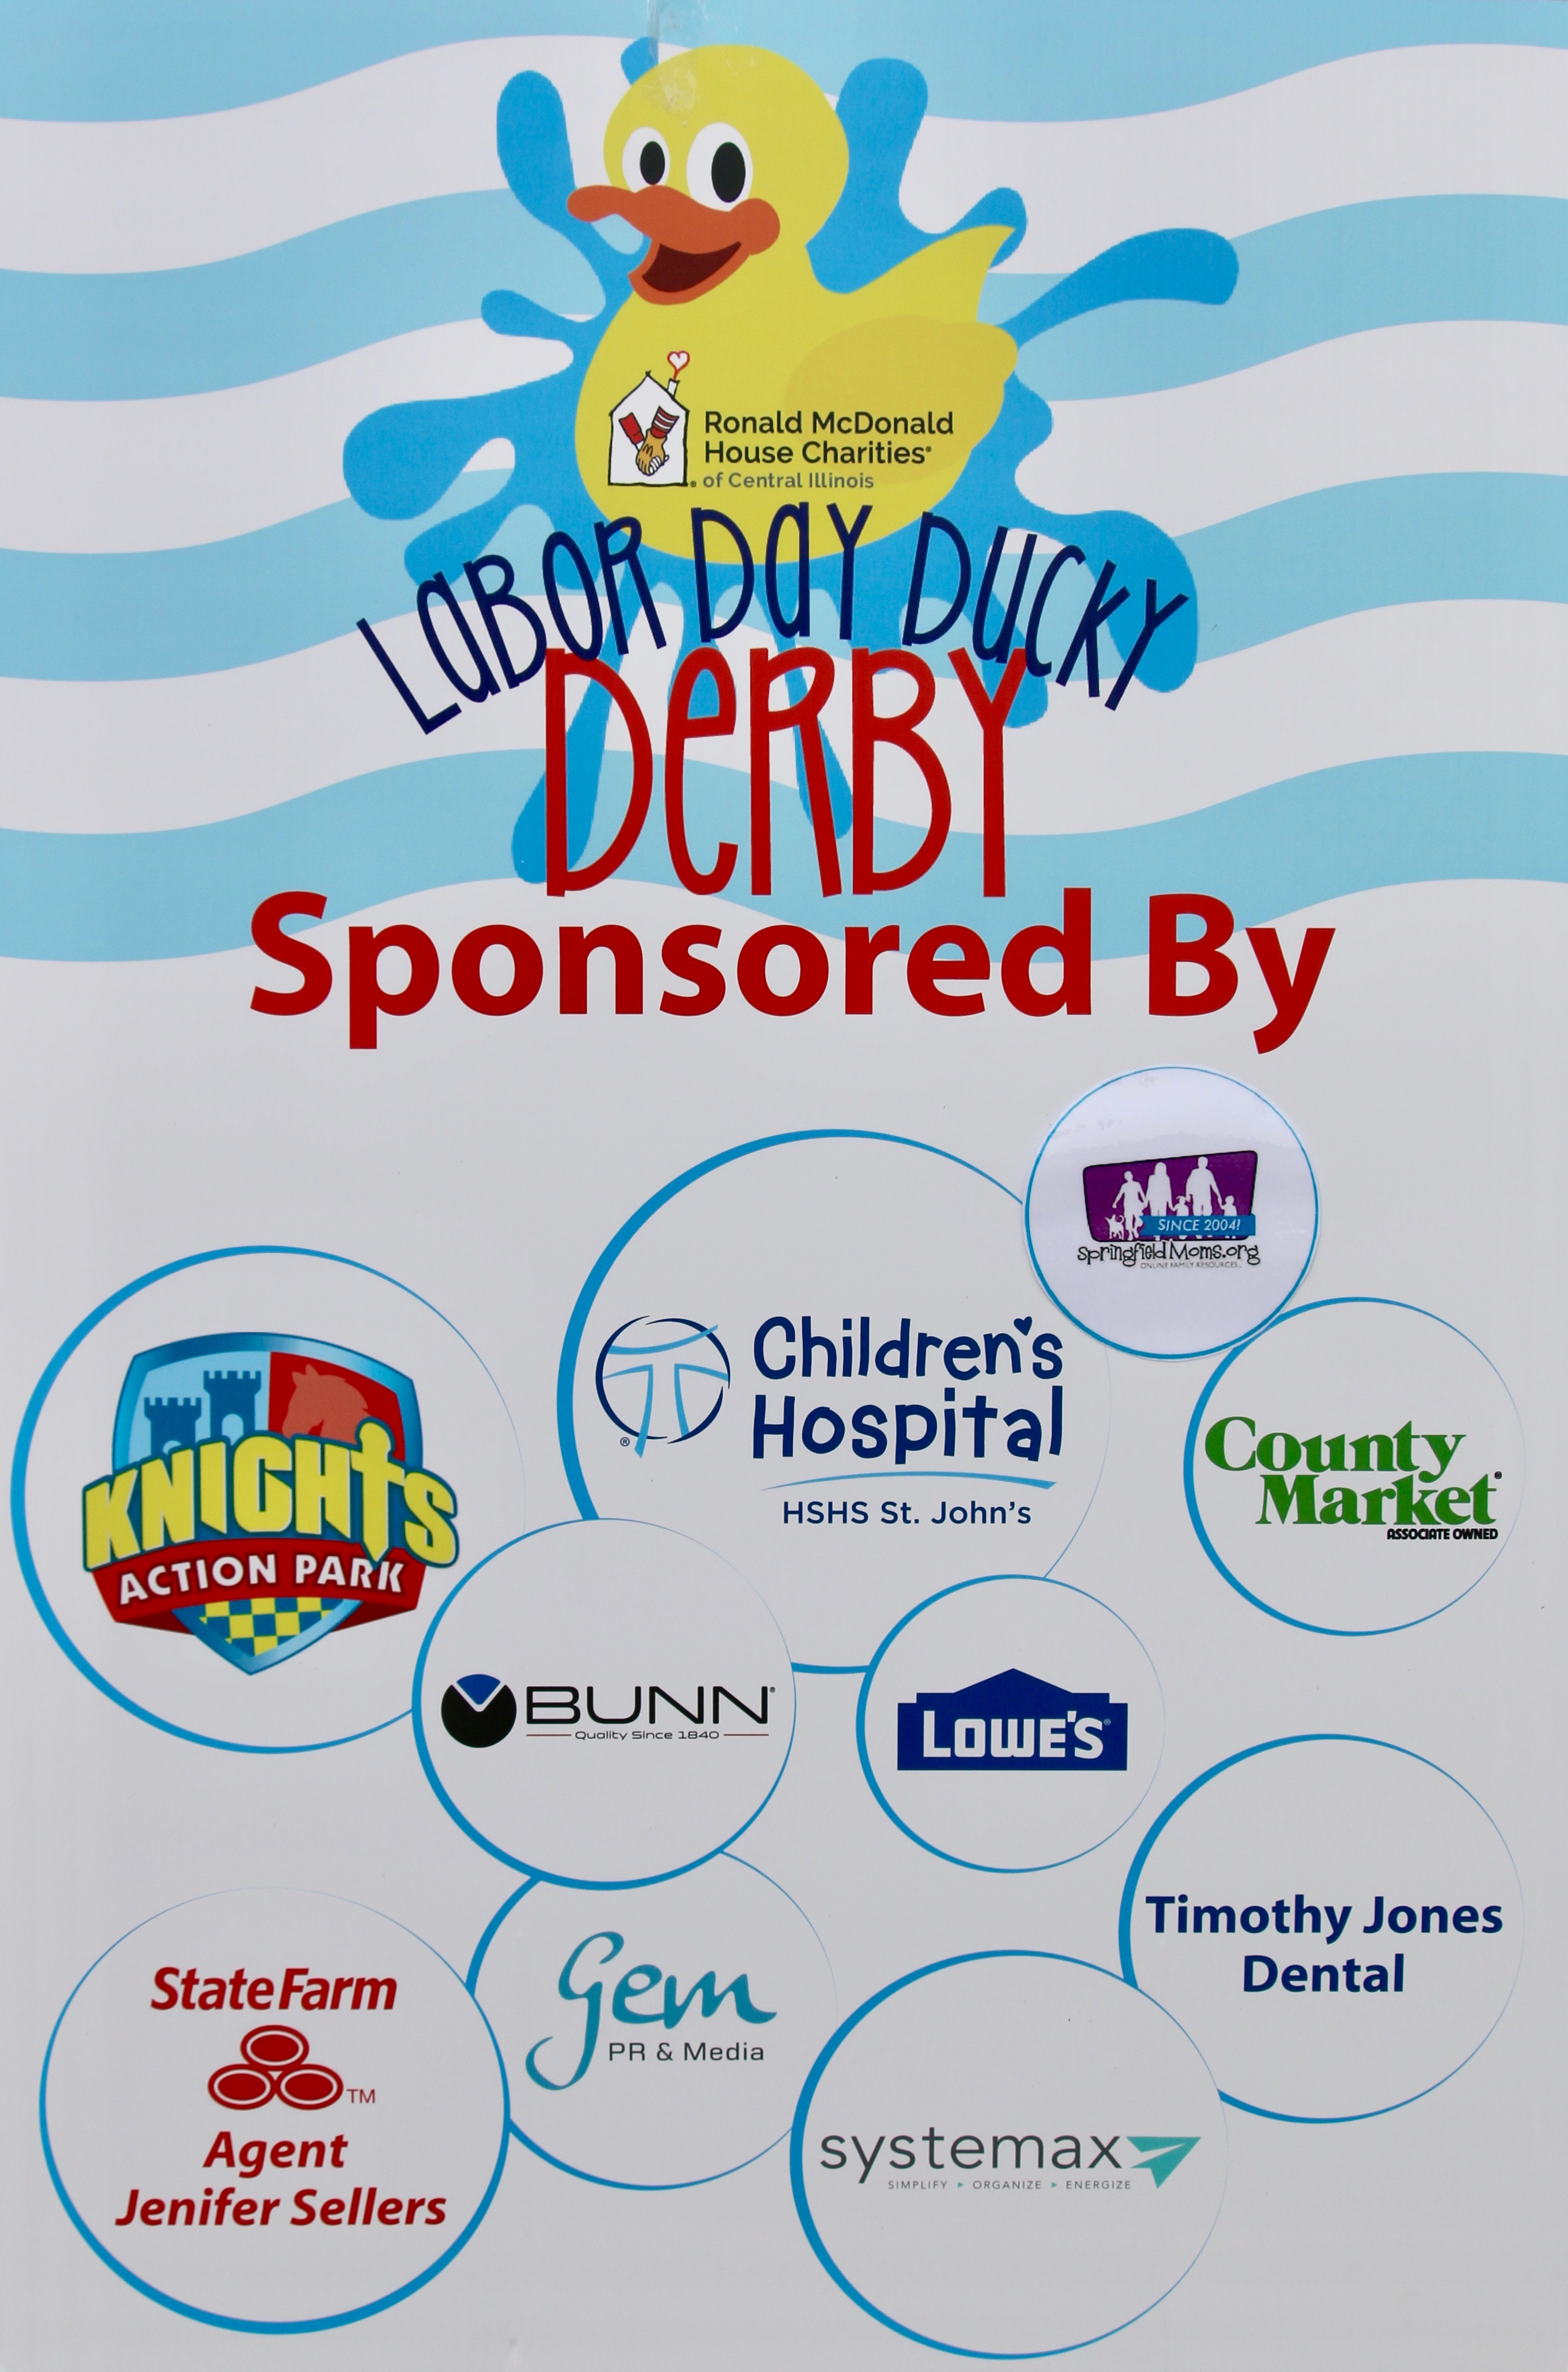 Thank you to all of our sponsors of the 2017 Labor Day Ducky Derby!